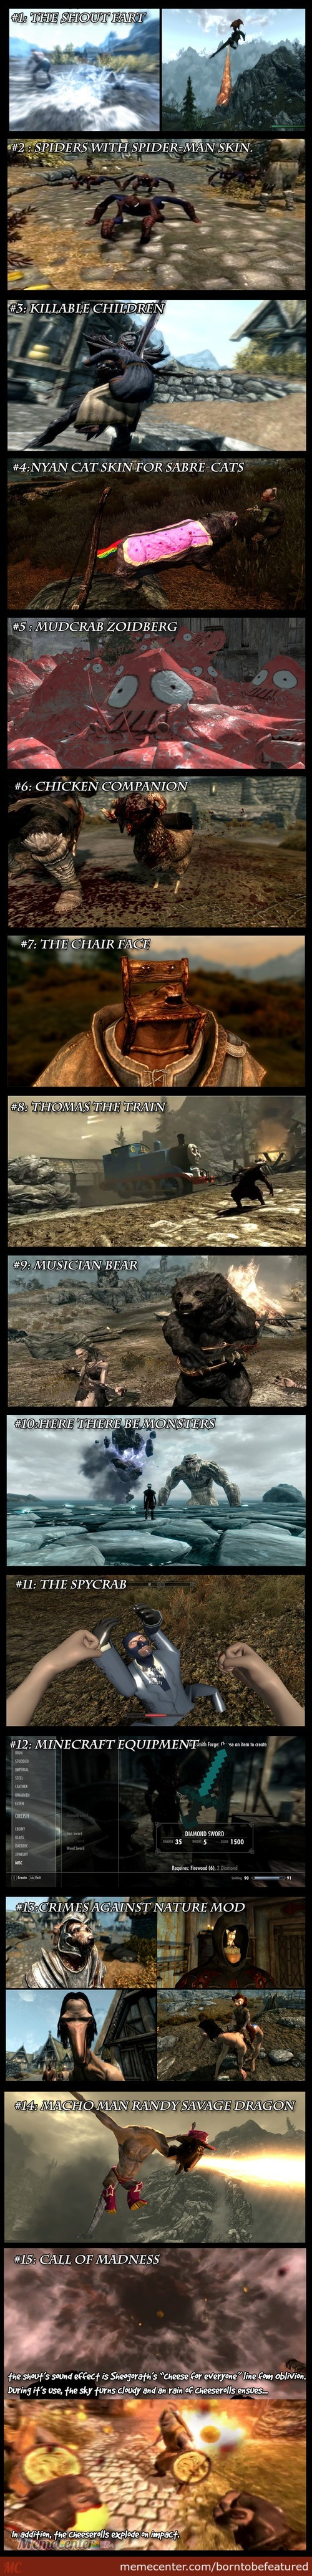 Some Really Crazy-Over The Top Skyrim Mods.